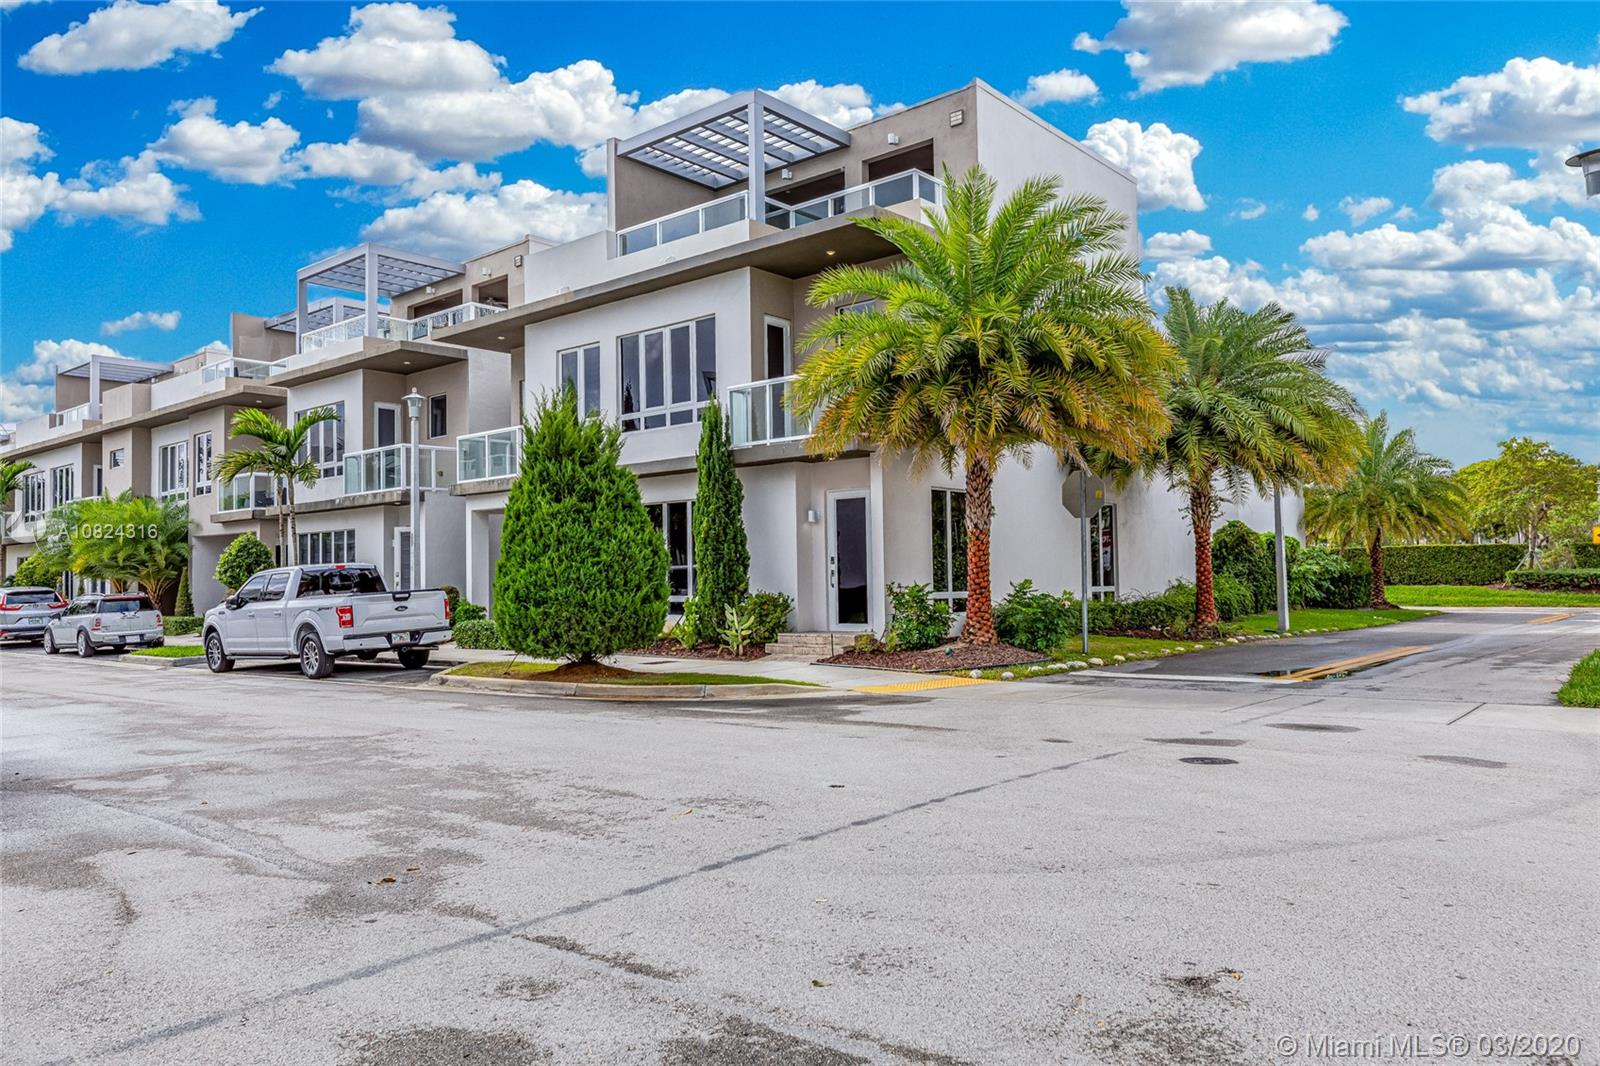 6412 NW 105th Pl, Doral, Florida 0 Bedroom as one of Homes & Land Real Estate